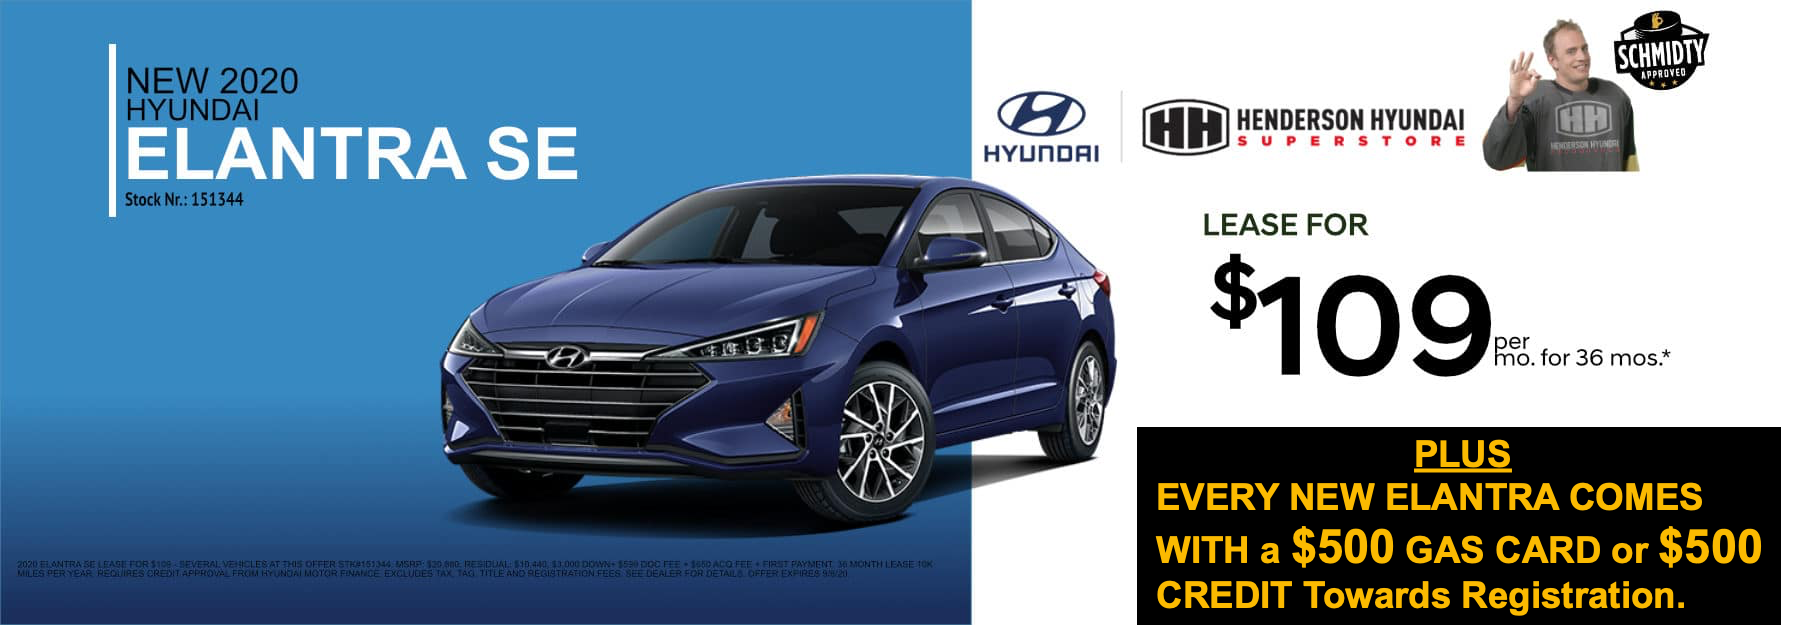 September-2020_Elantra_109_Mo-36-Month-Lease_-1800×625+plus gas card